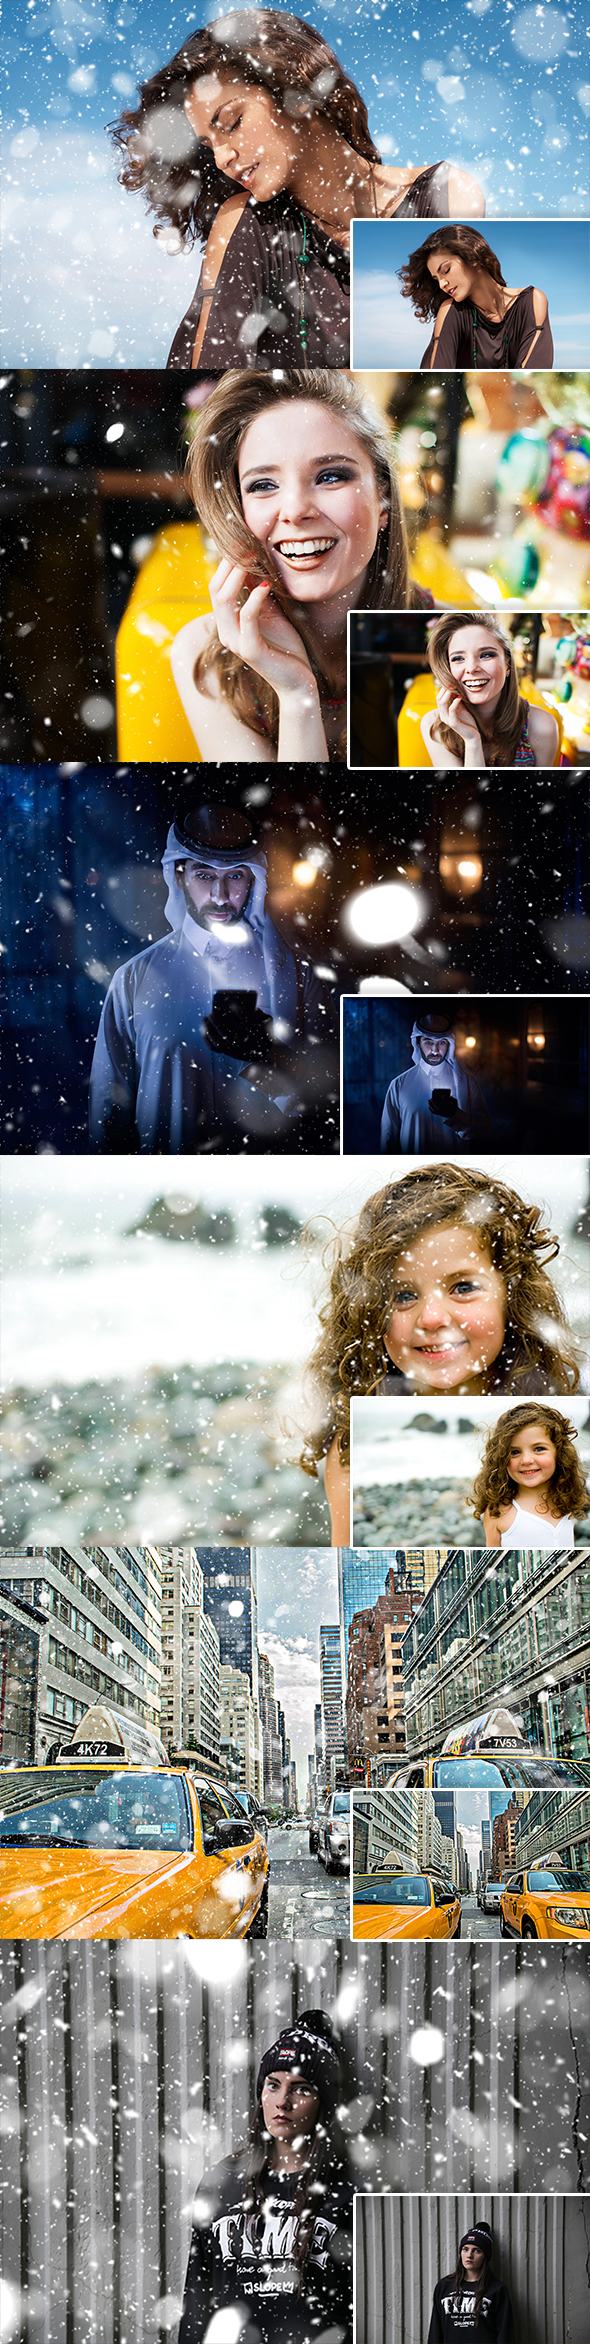 GraphicRiver Let It Snow Photoshop Action 20943900